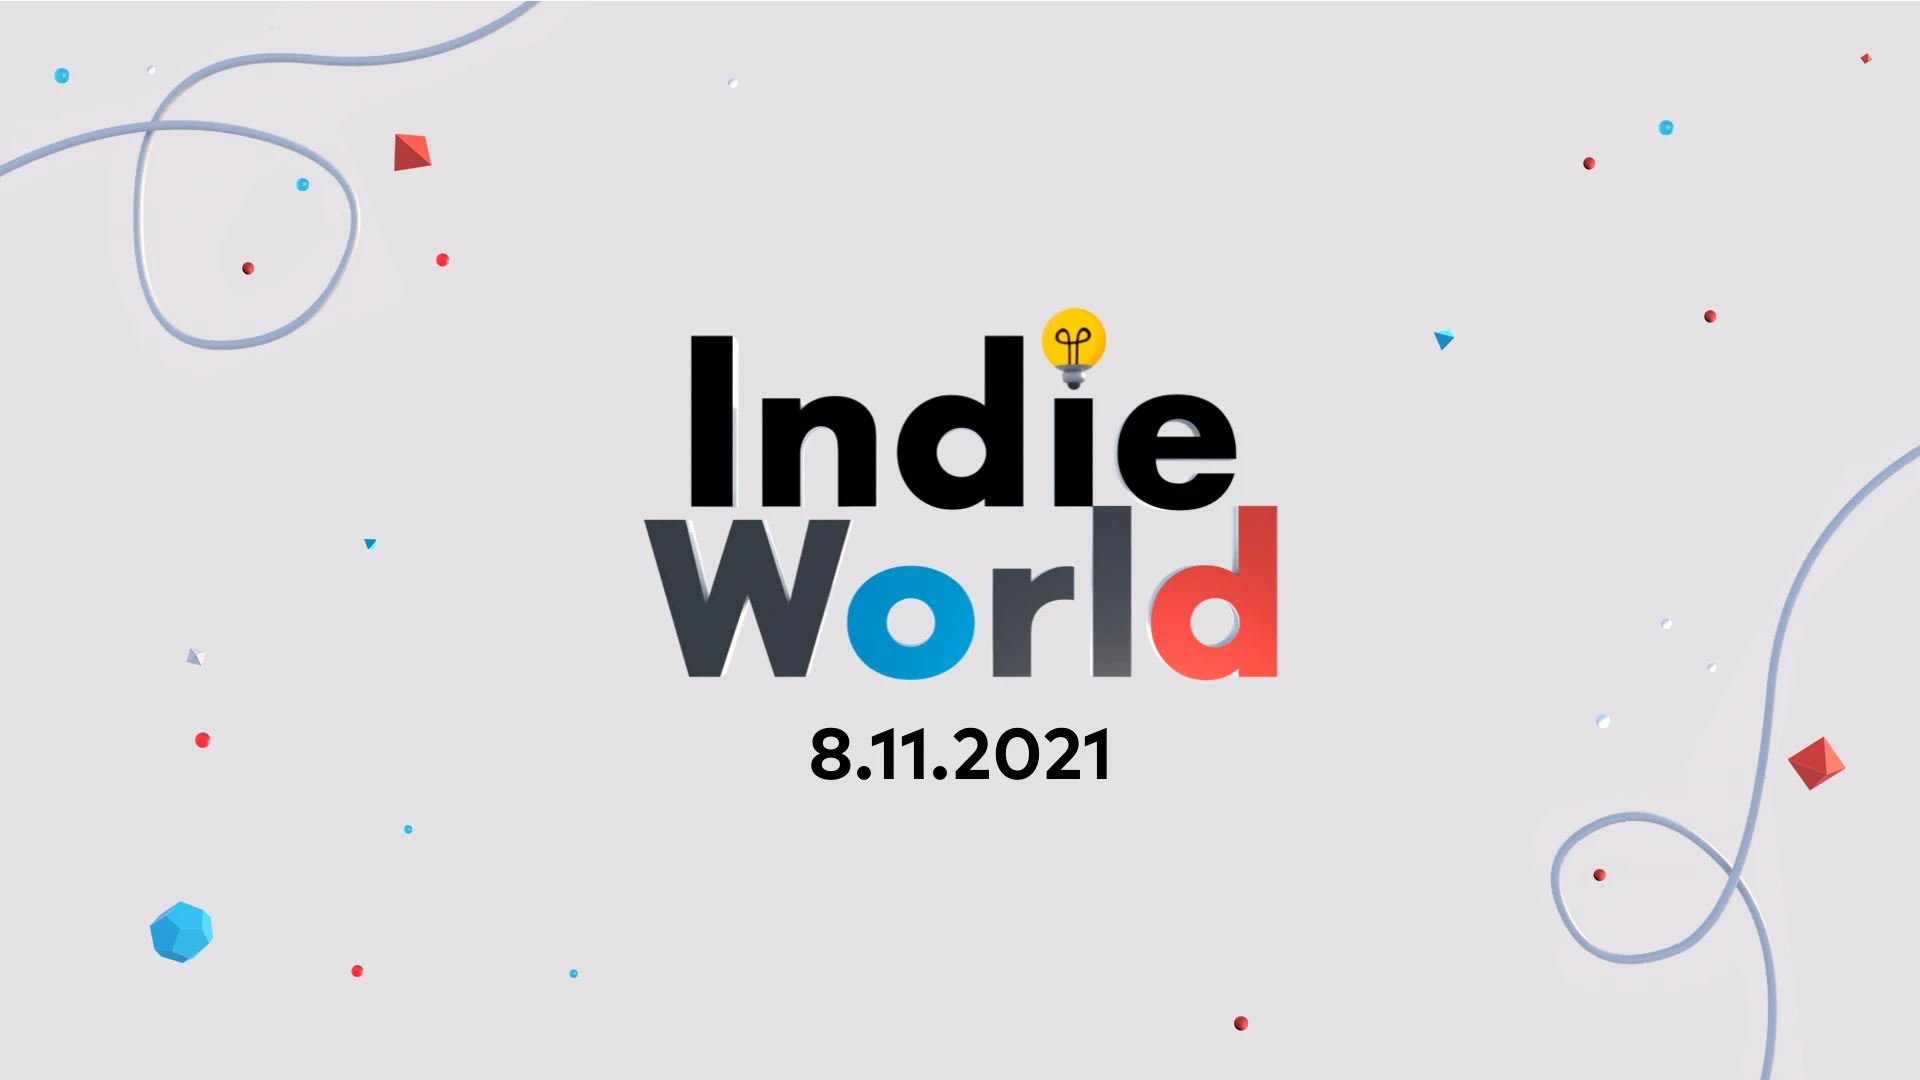 All Games from Indie World Showcase 8.11.2021